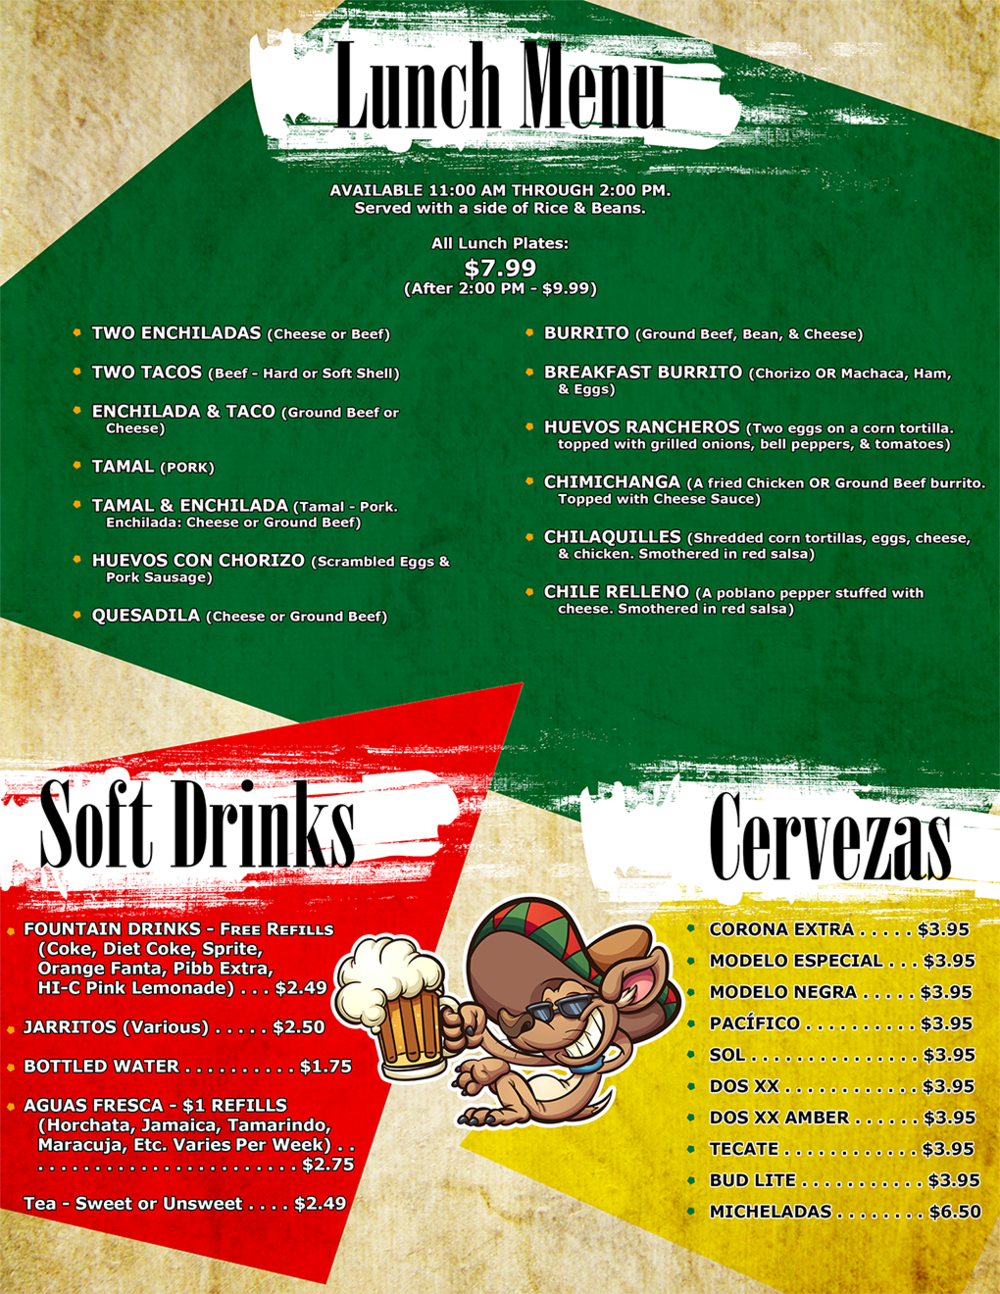 Lunch Menu, Soft Drinks, and Beer